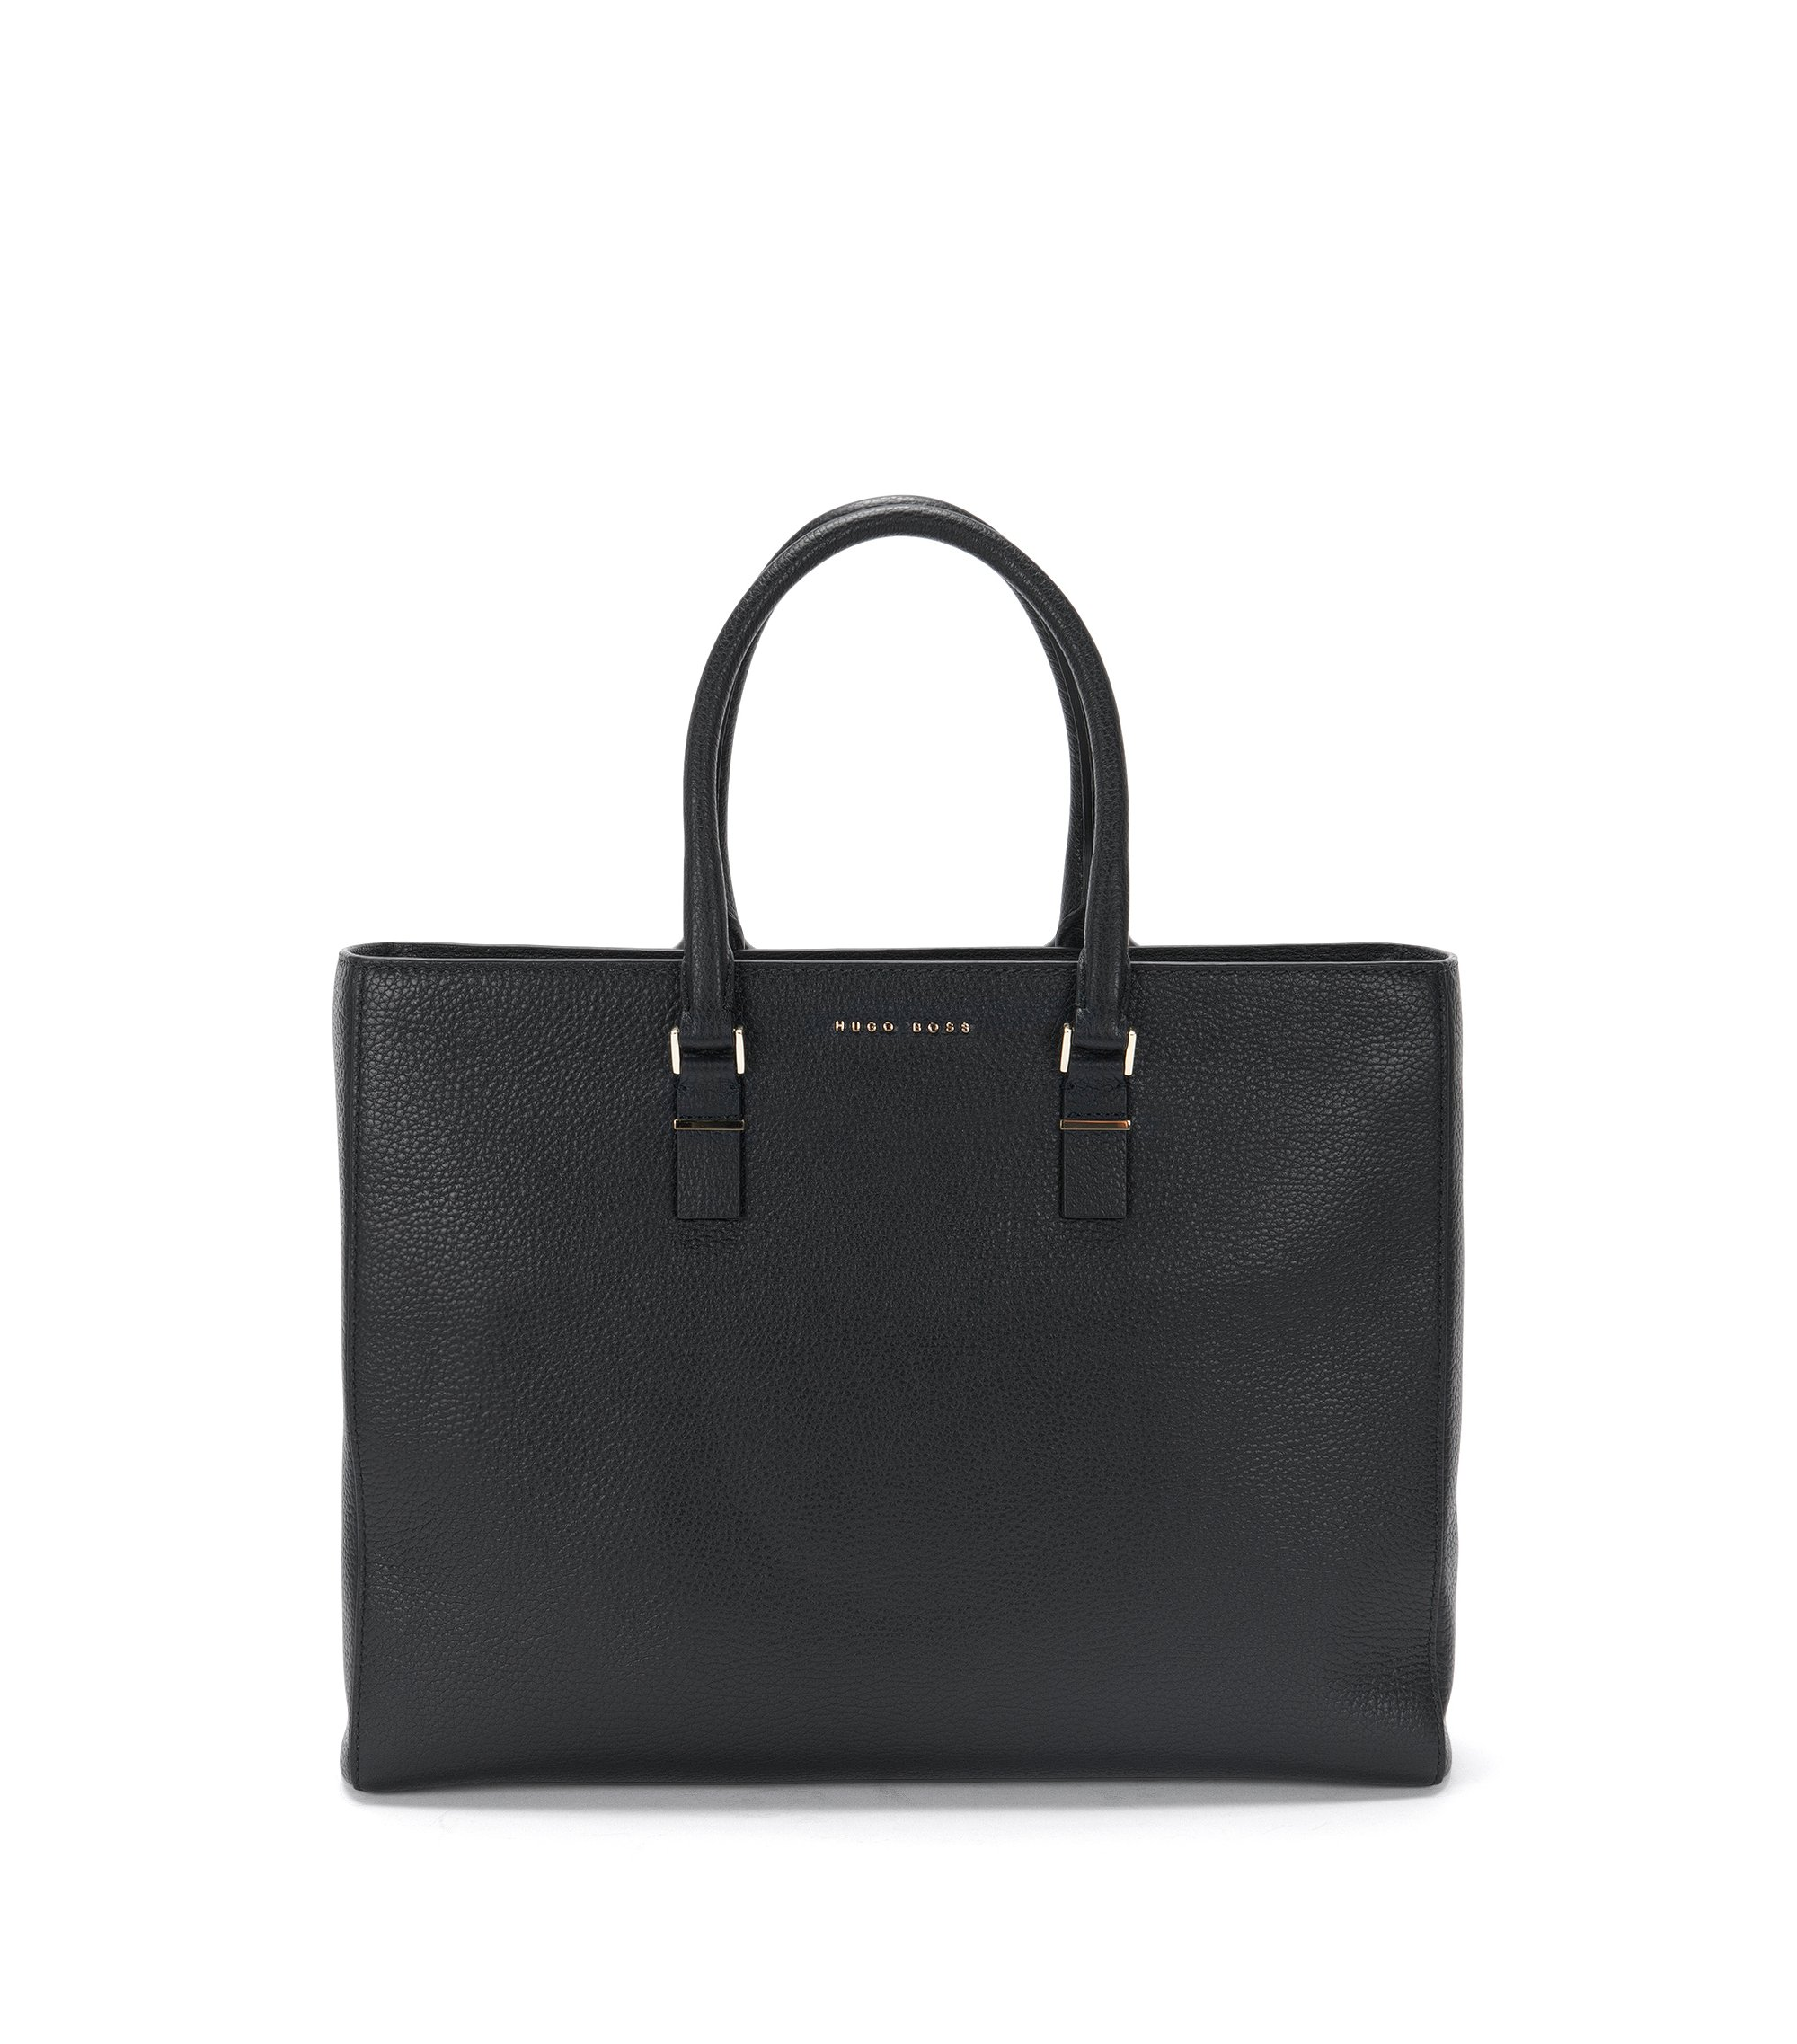 Workbag van luxueus Italiaans leer uit de Luxury Staple-collectie van BOSS, Zwart